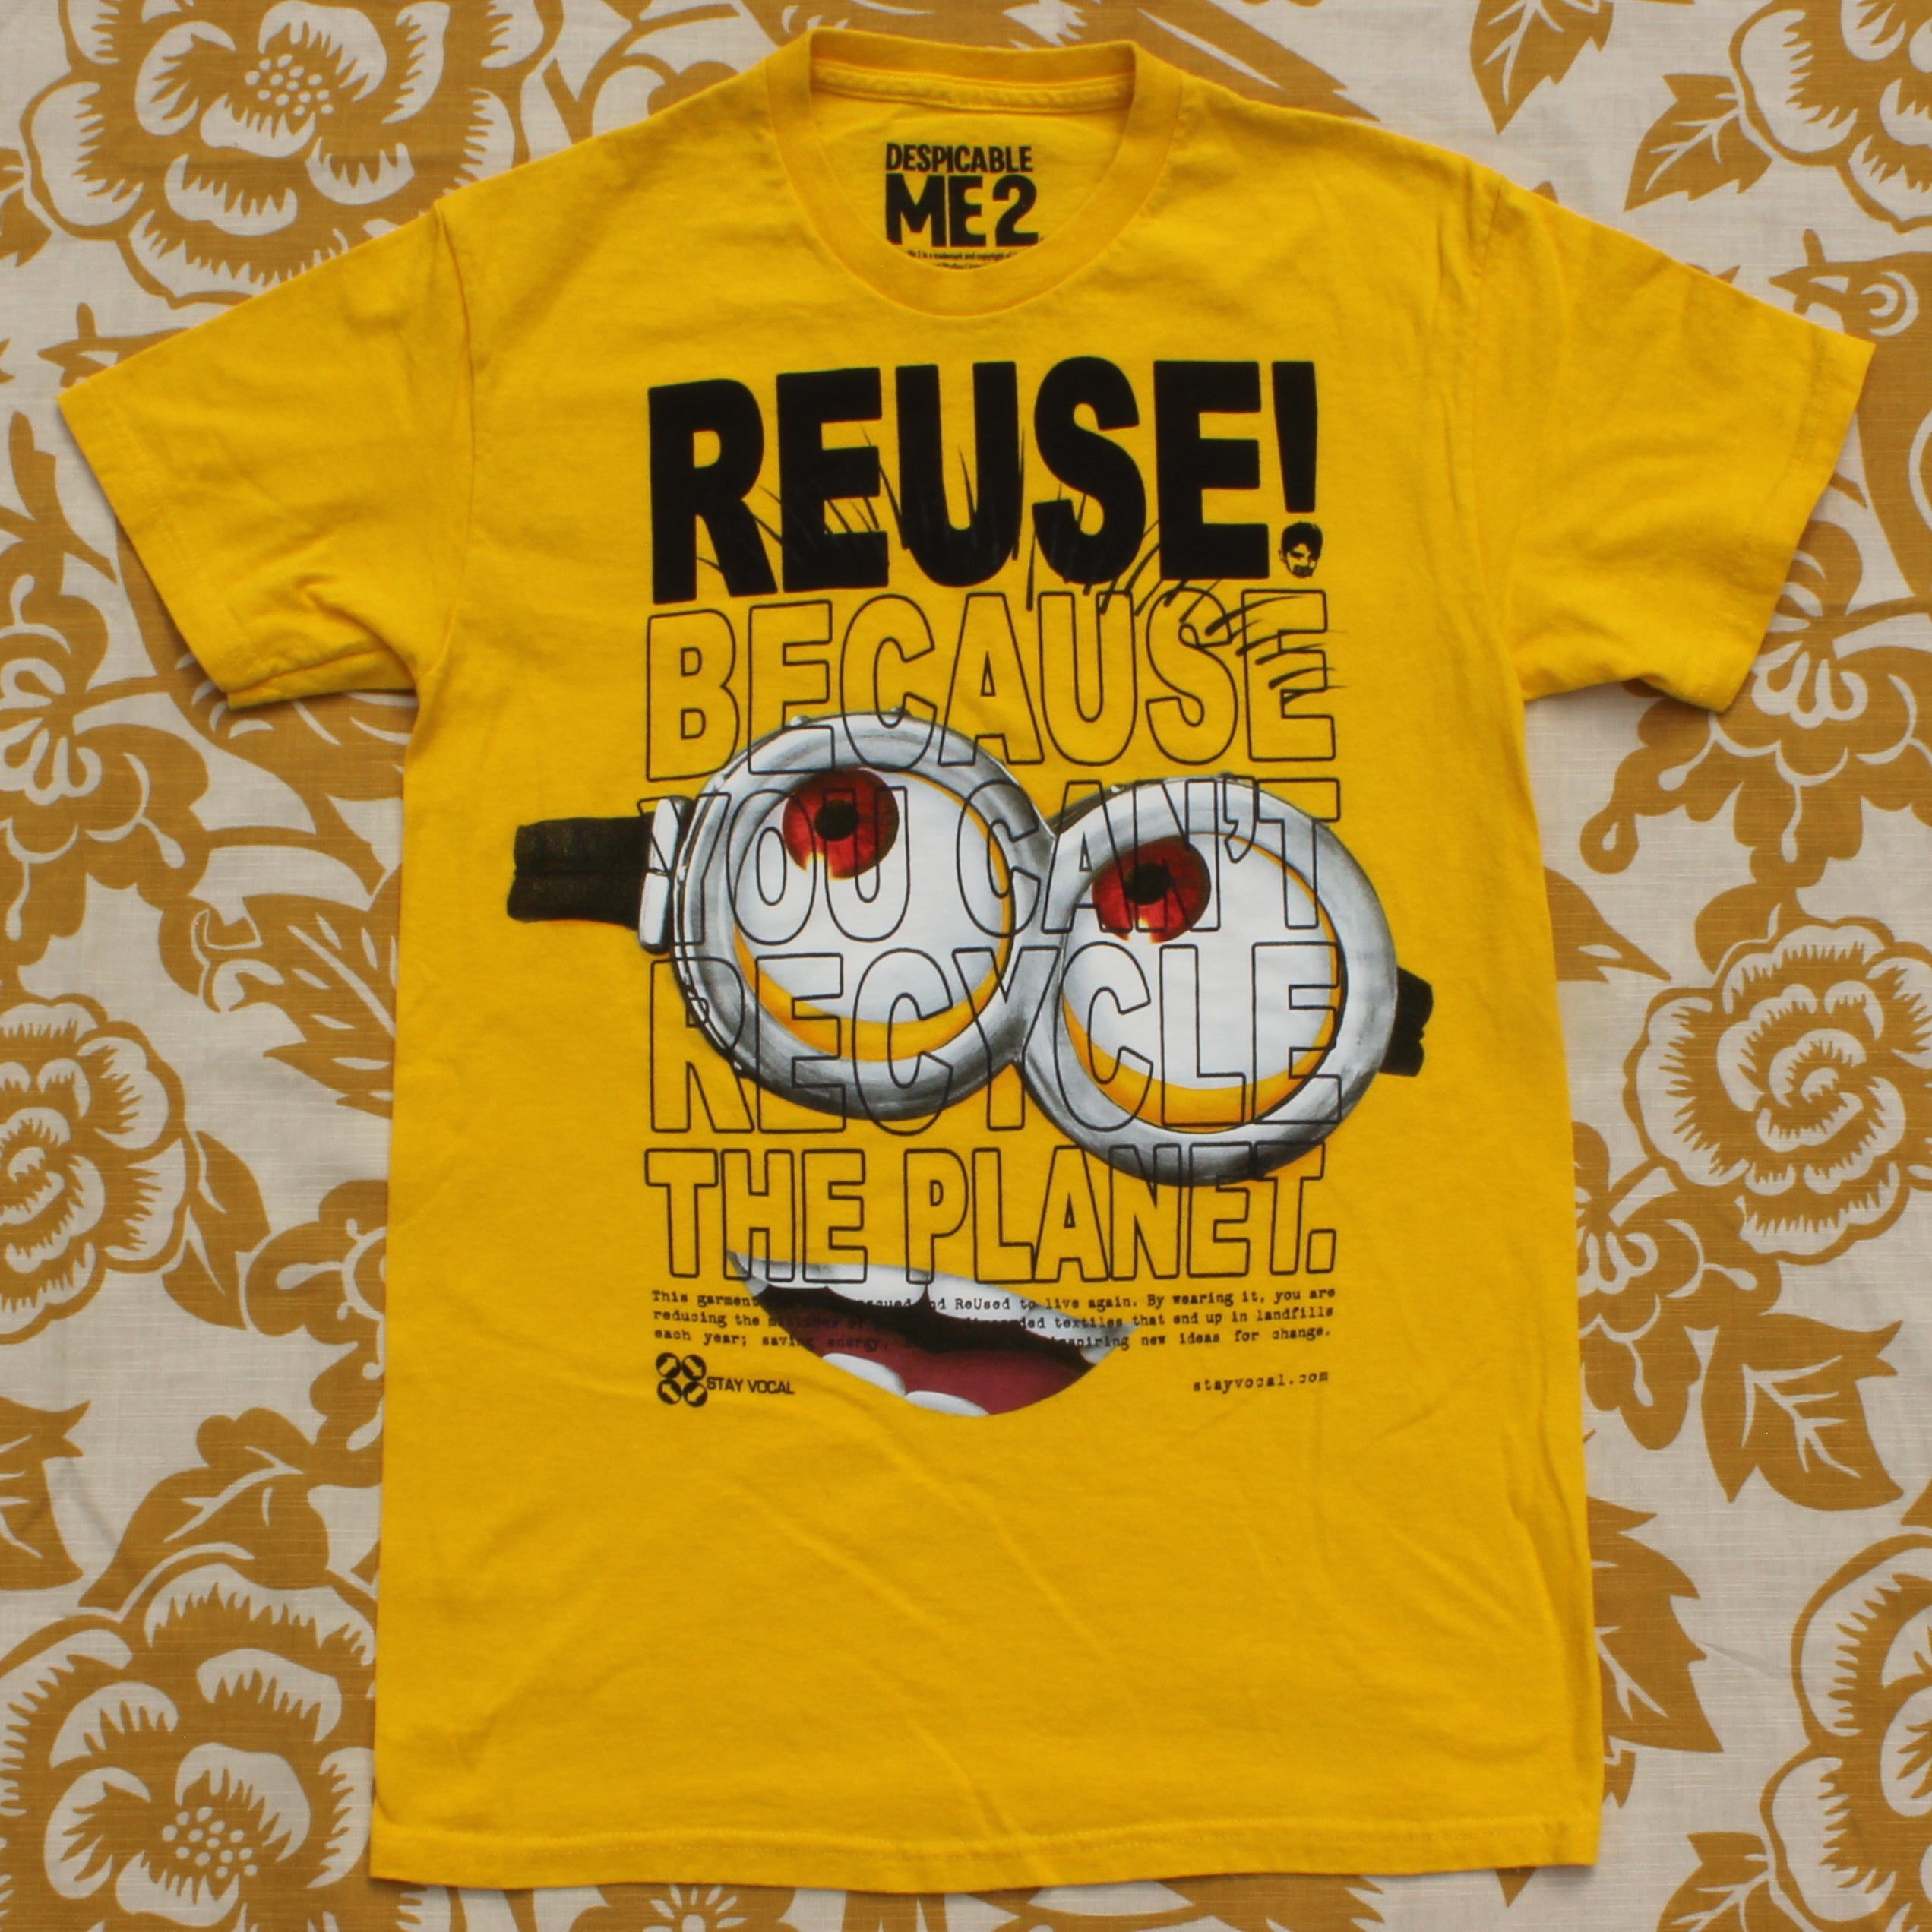 One of a Kind (Men's S) REUSE! Yellow Guy Looking Up T-Shirt